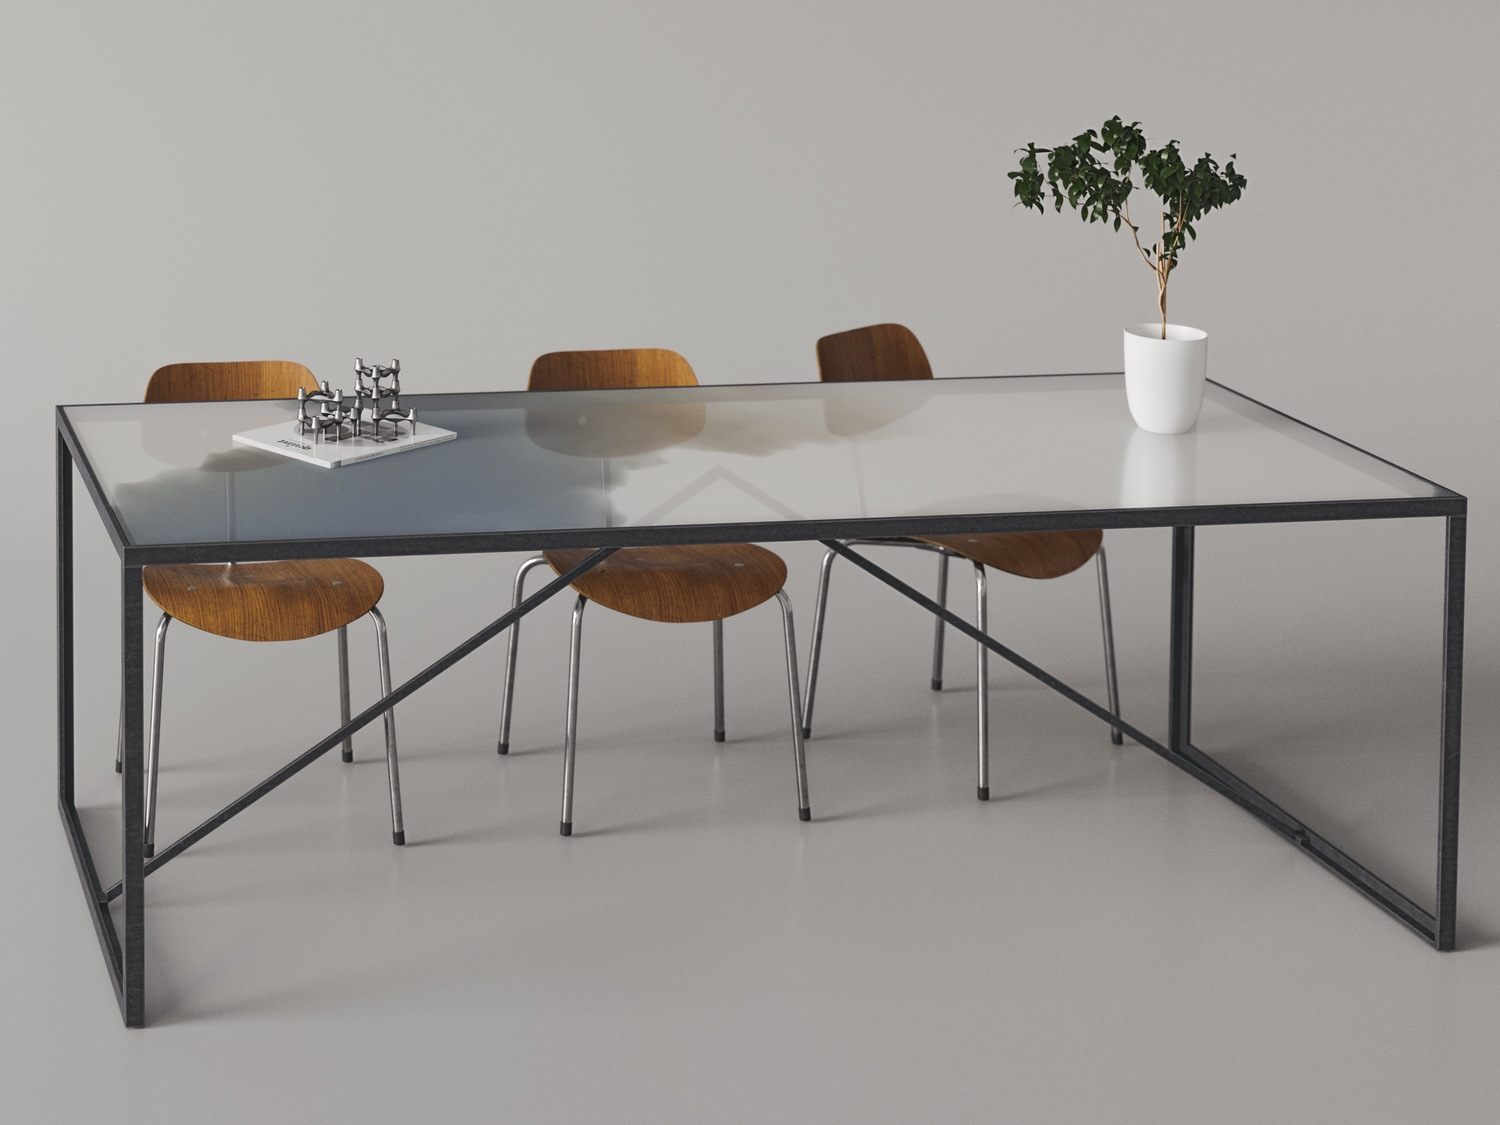 Full+view+of+Table+with+Custom+Glass+top.jpg